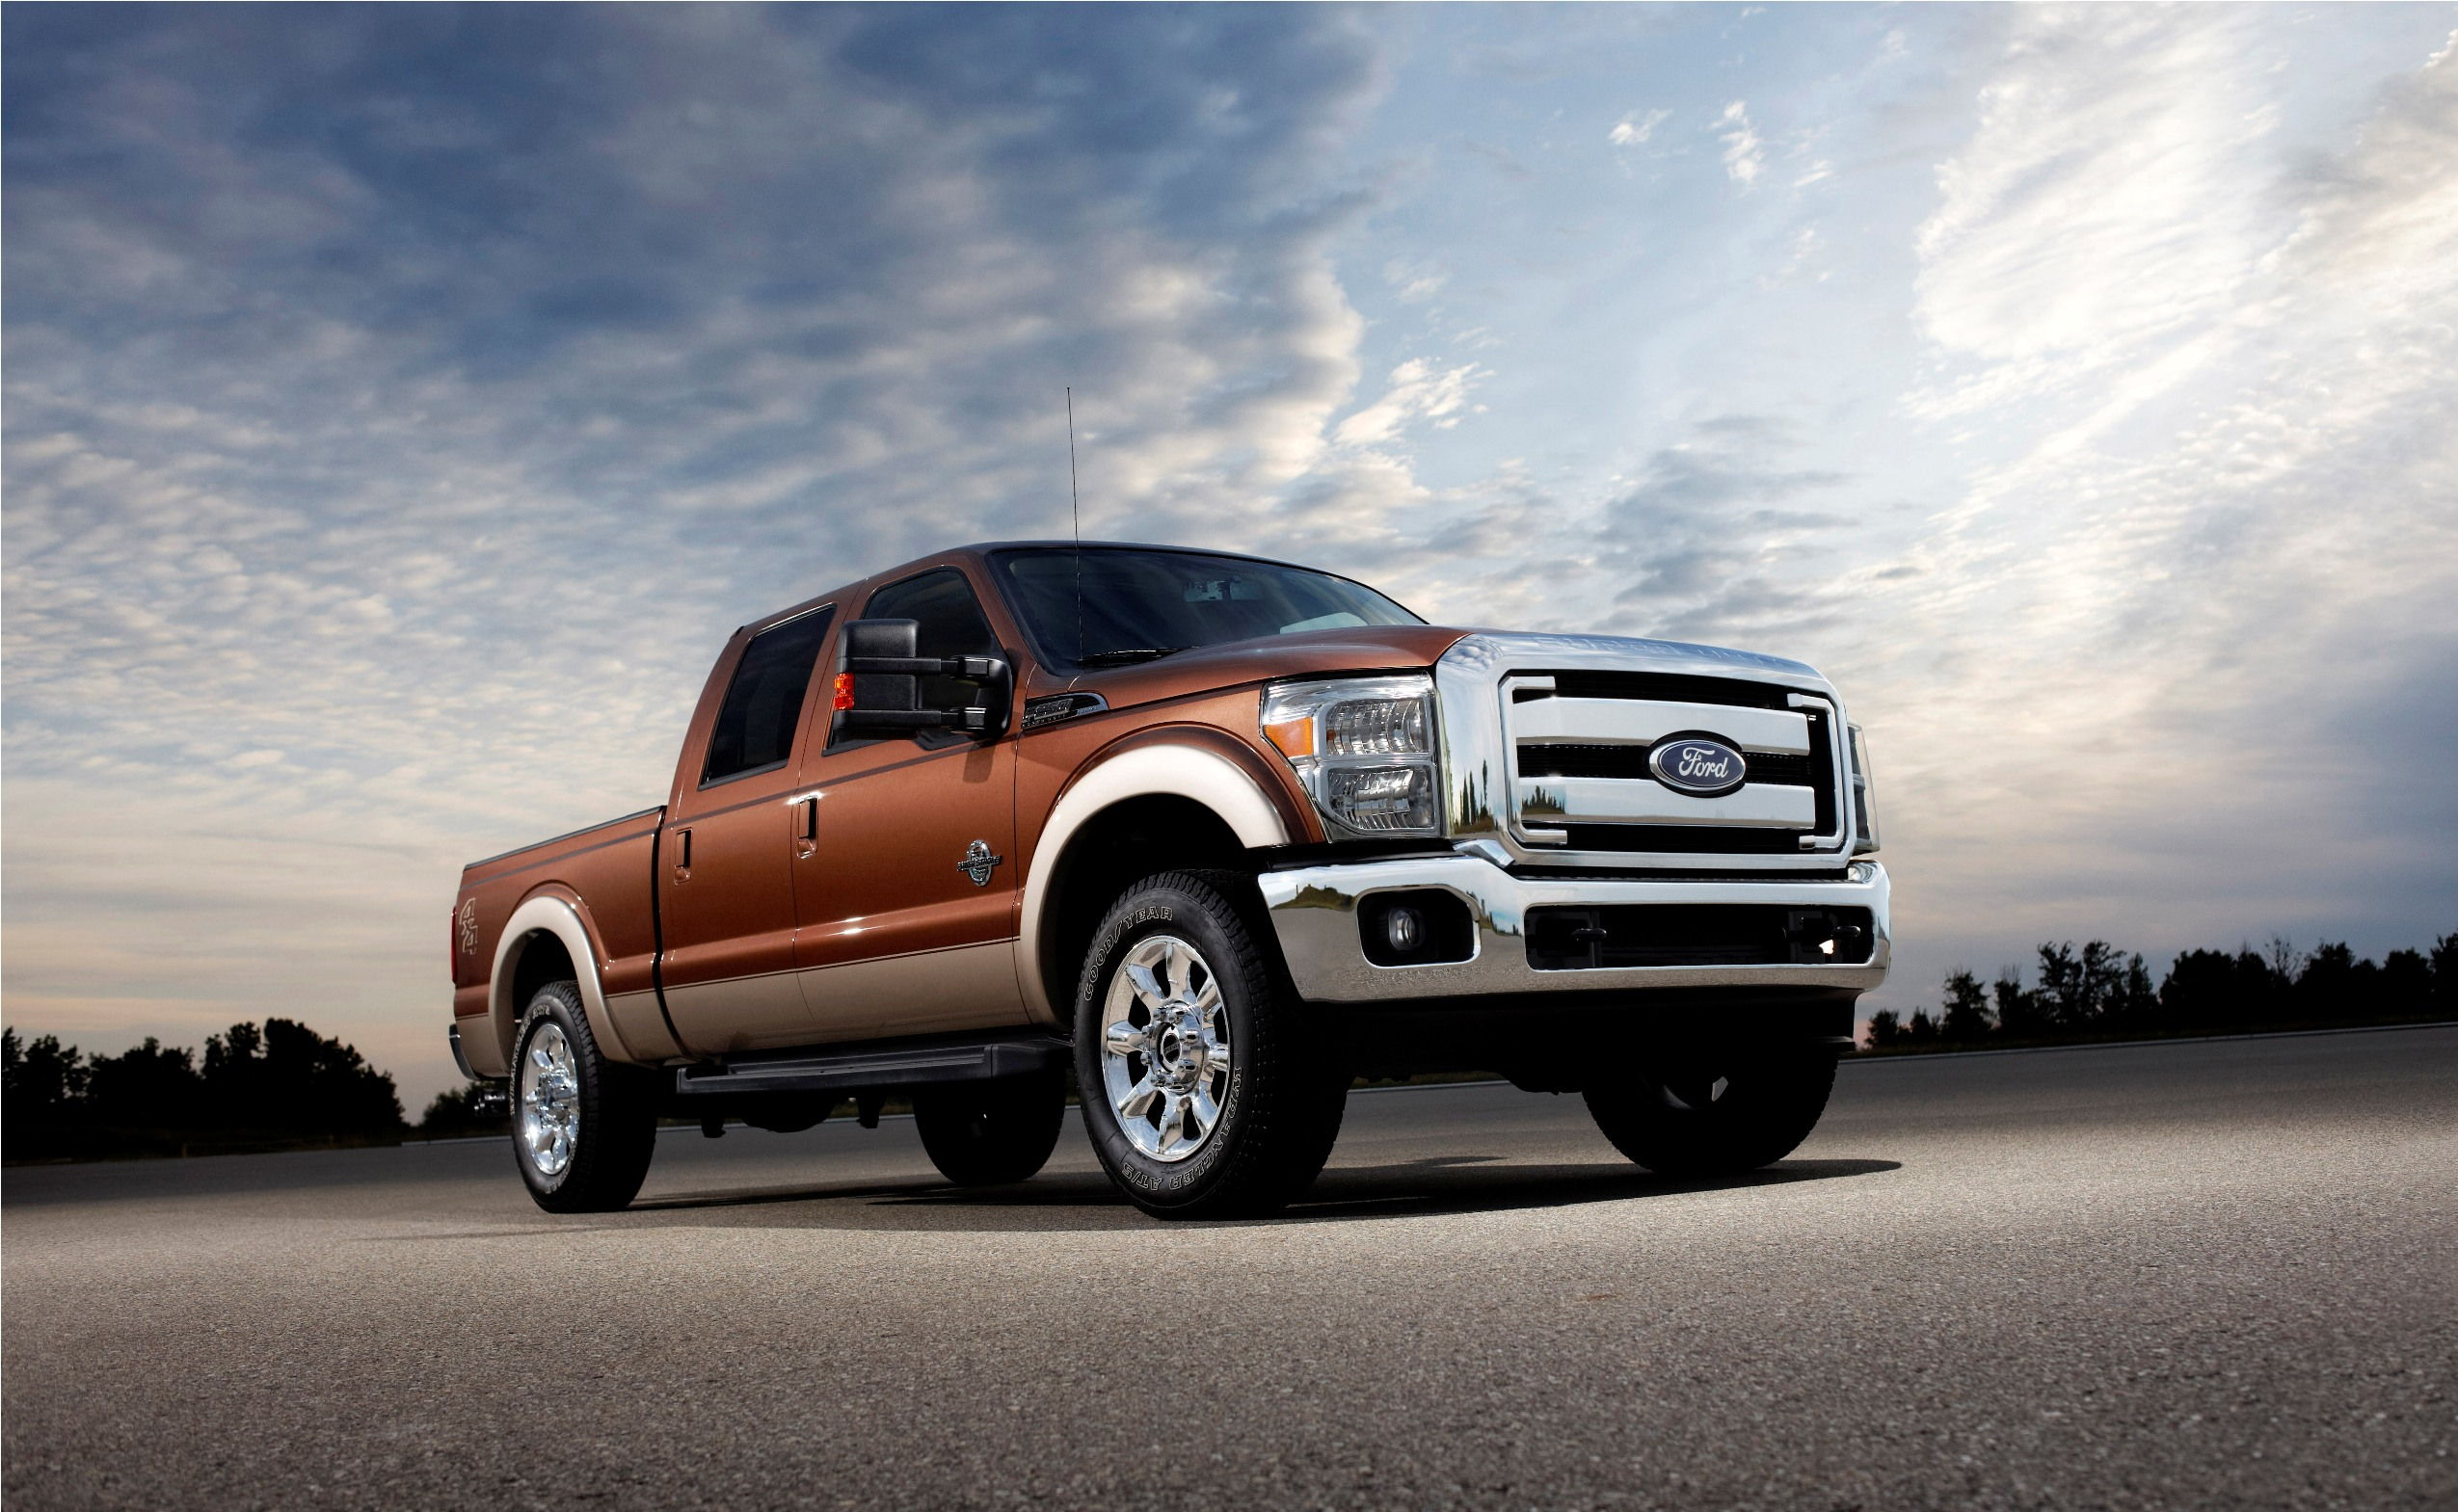 Ford Truck Wallpapers Desktop : Cars Wallpaper - Petsprin